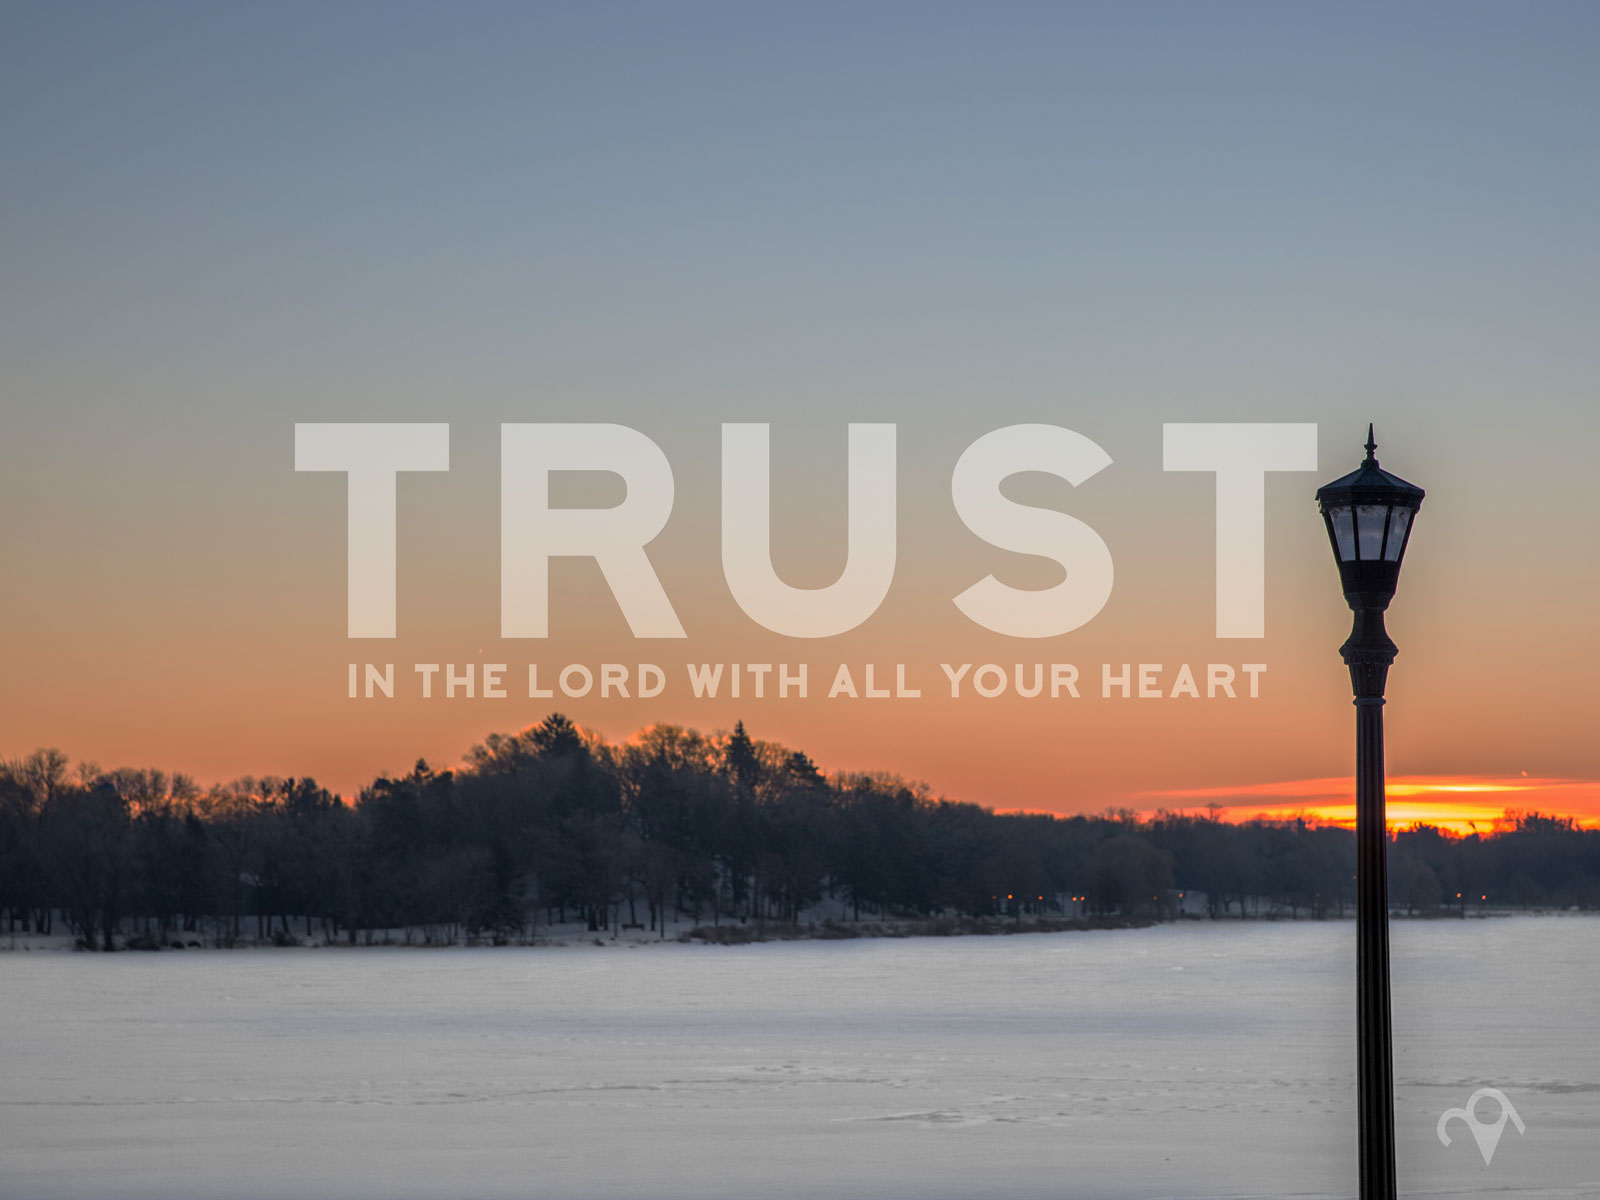 Today's Guide — 01.20.17 — Trust and Obey